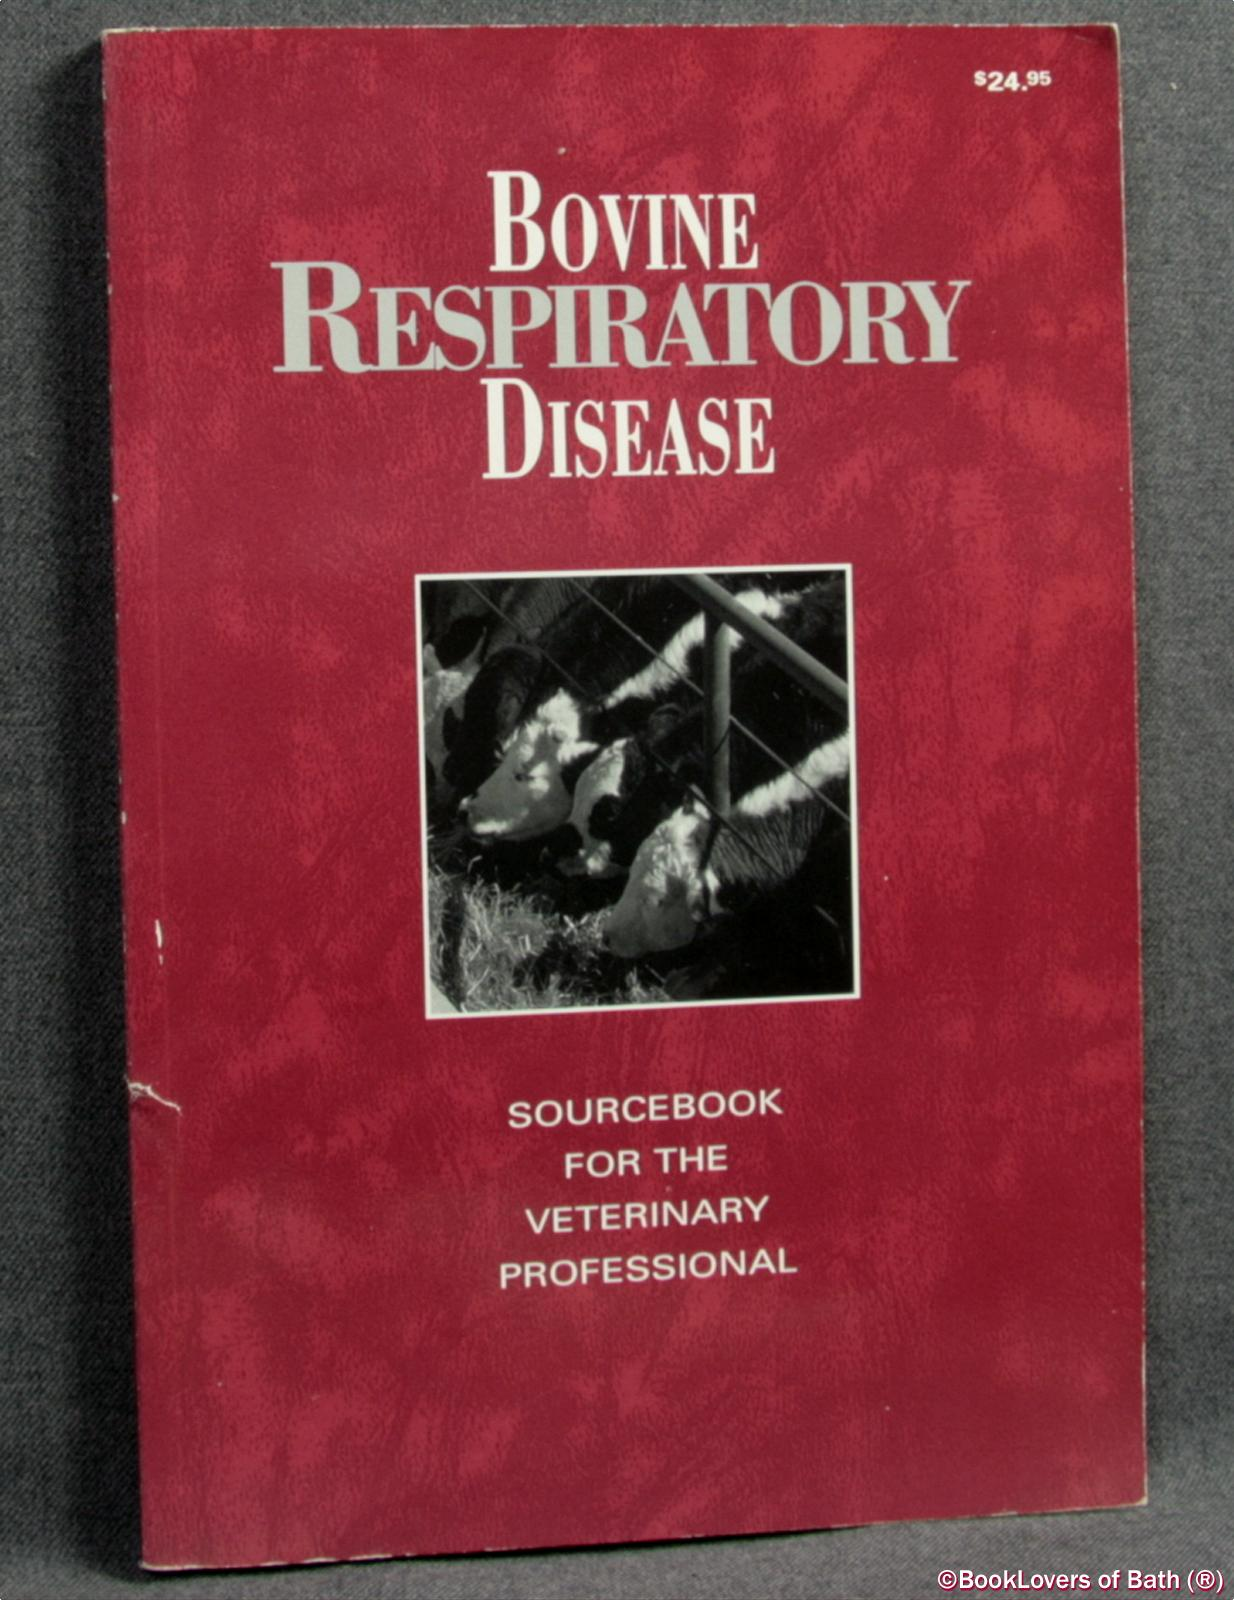 Bovine Respiratory Disease: Sourcebook For the Veterinary Professional - Anon.